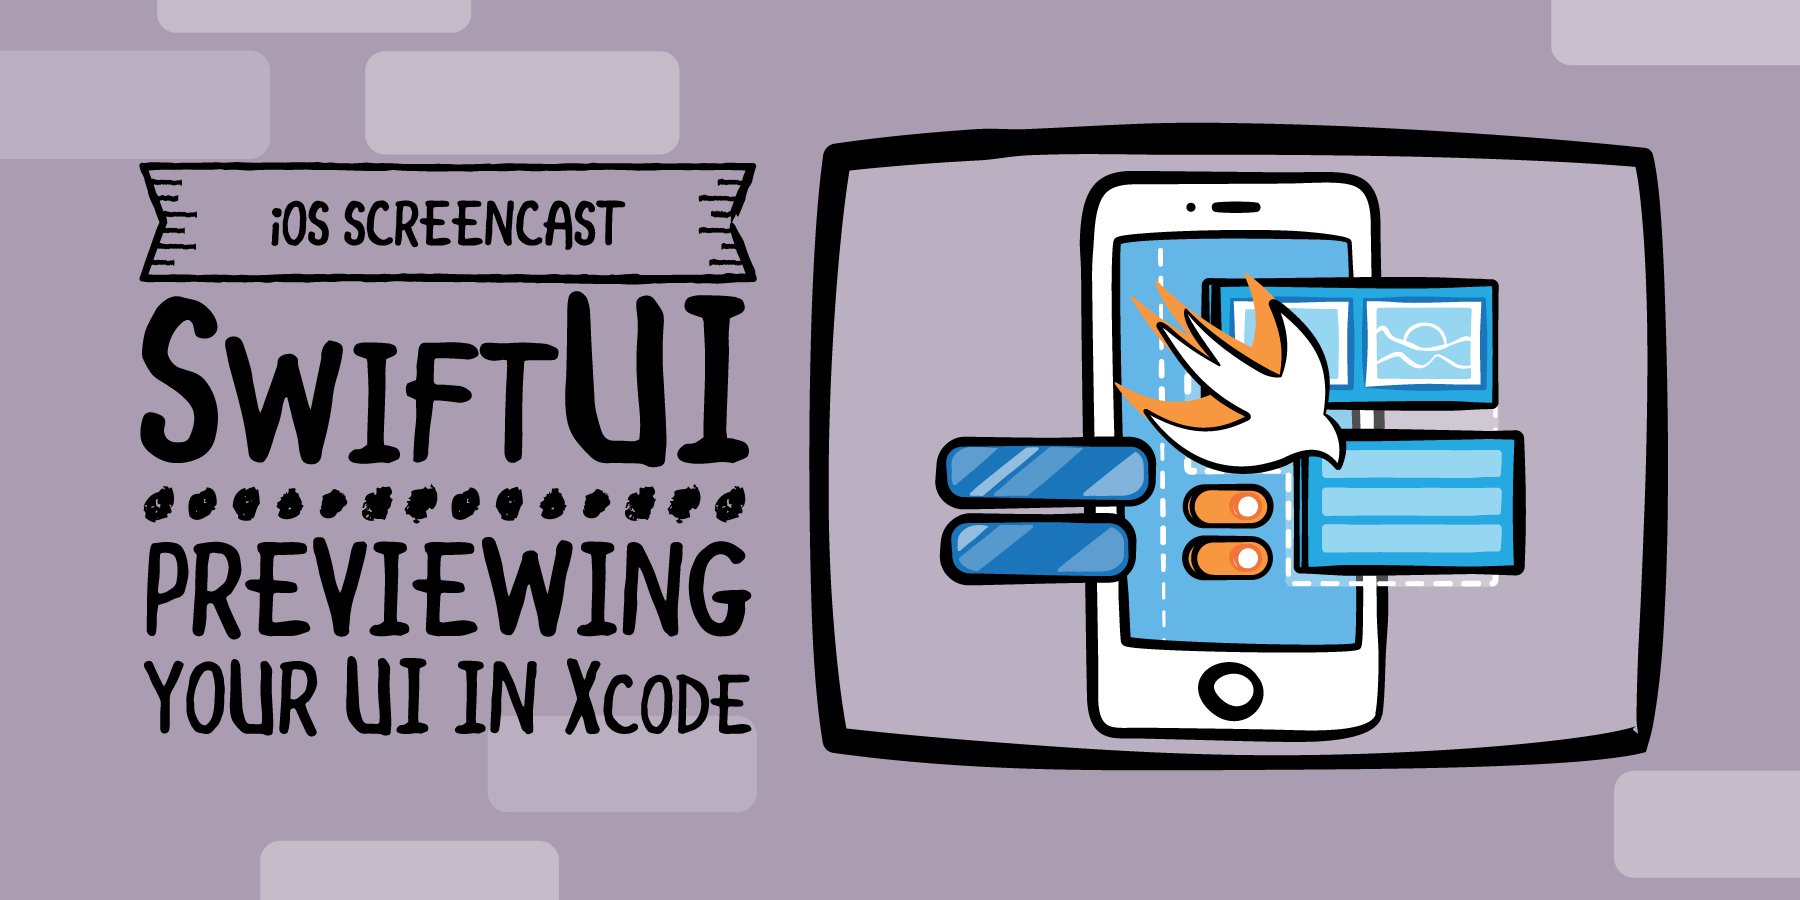 Swift UI - Previewing Your UI in Xcode